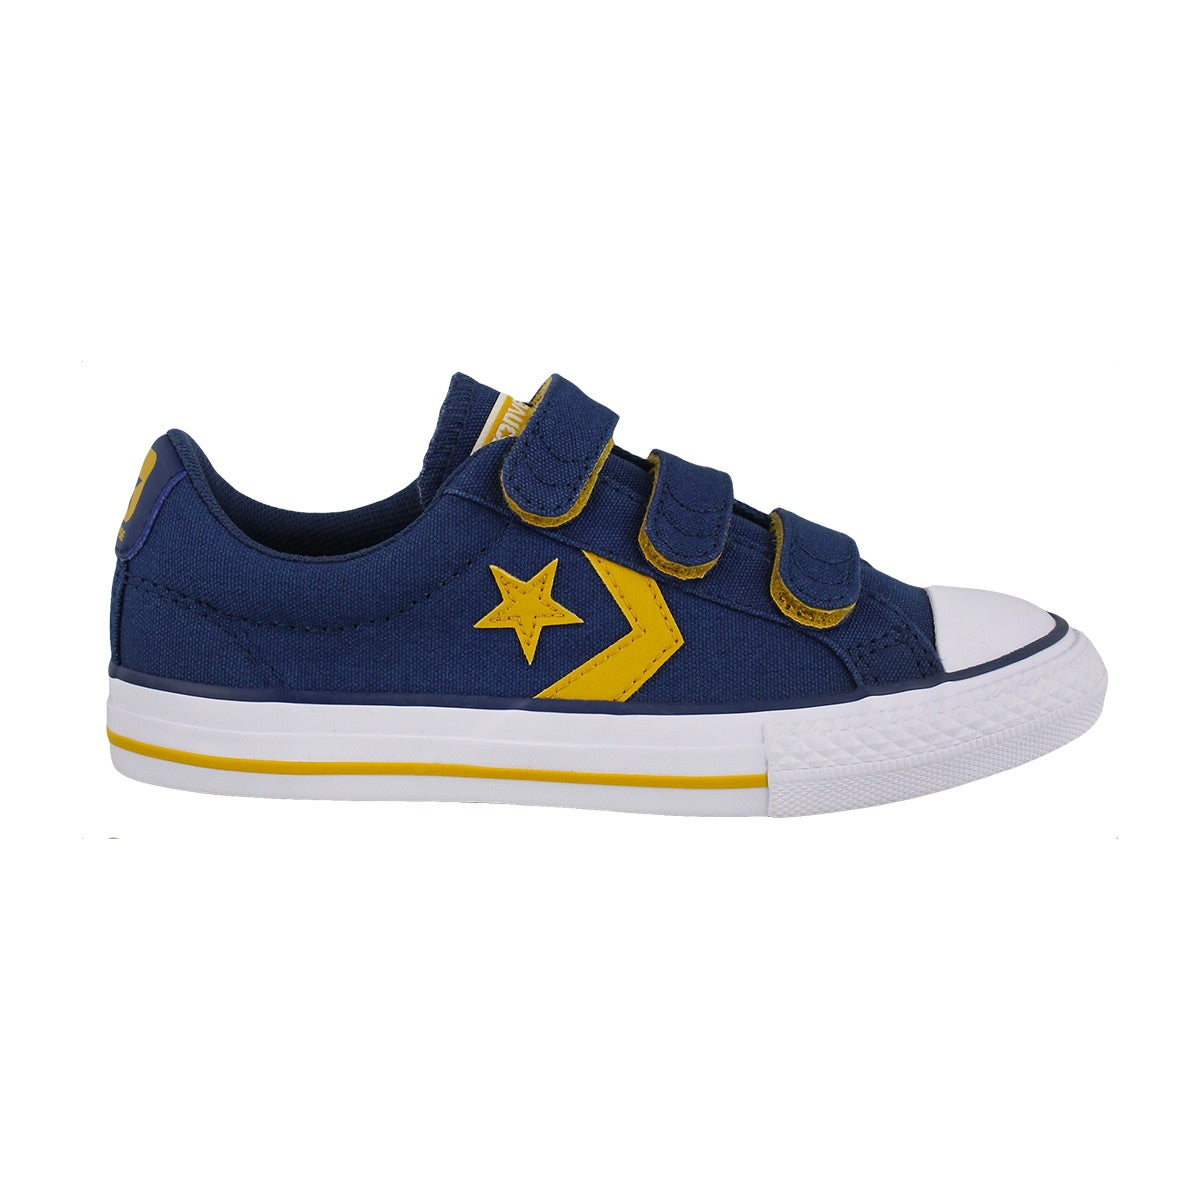 Bys Star Player 3V nvy/yllw/wht sneaker